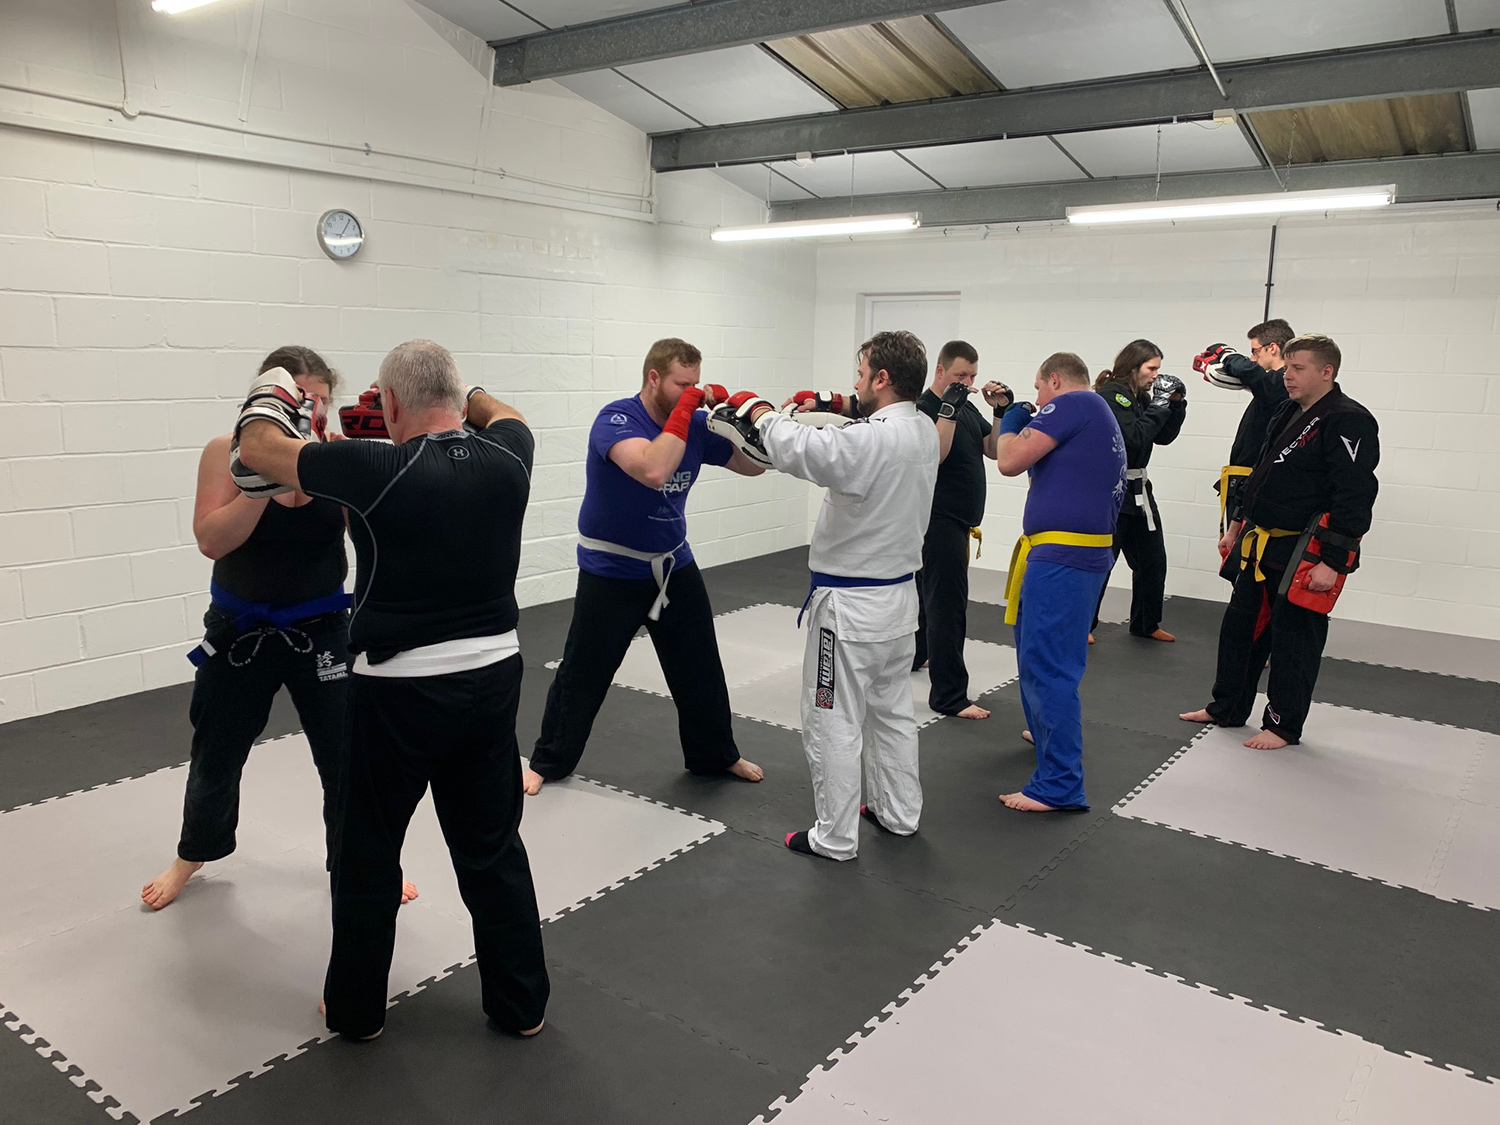 First class at the Viking Dojo and get turn out, plenty enough room for us